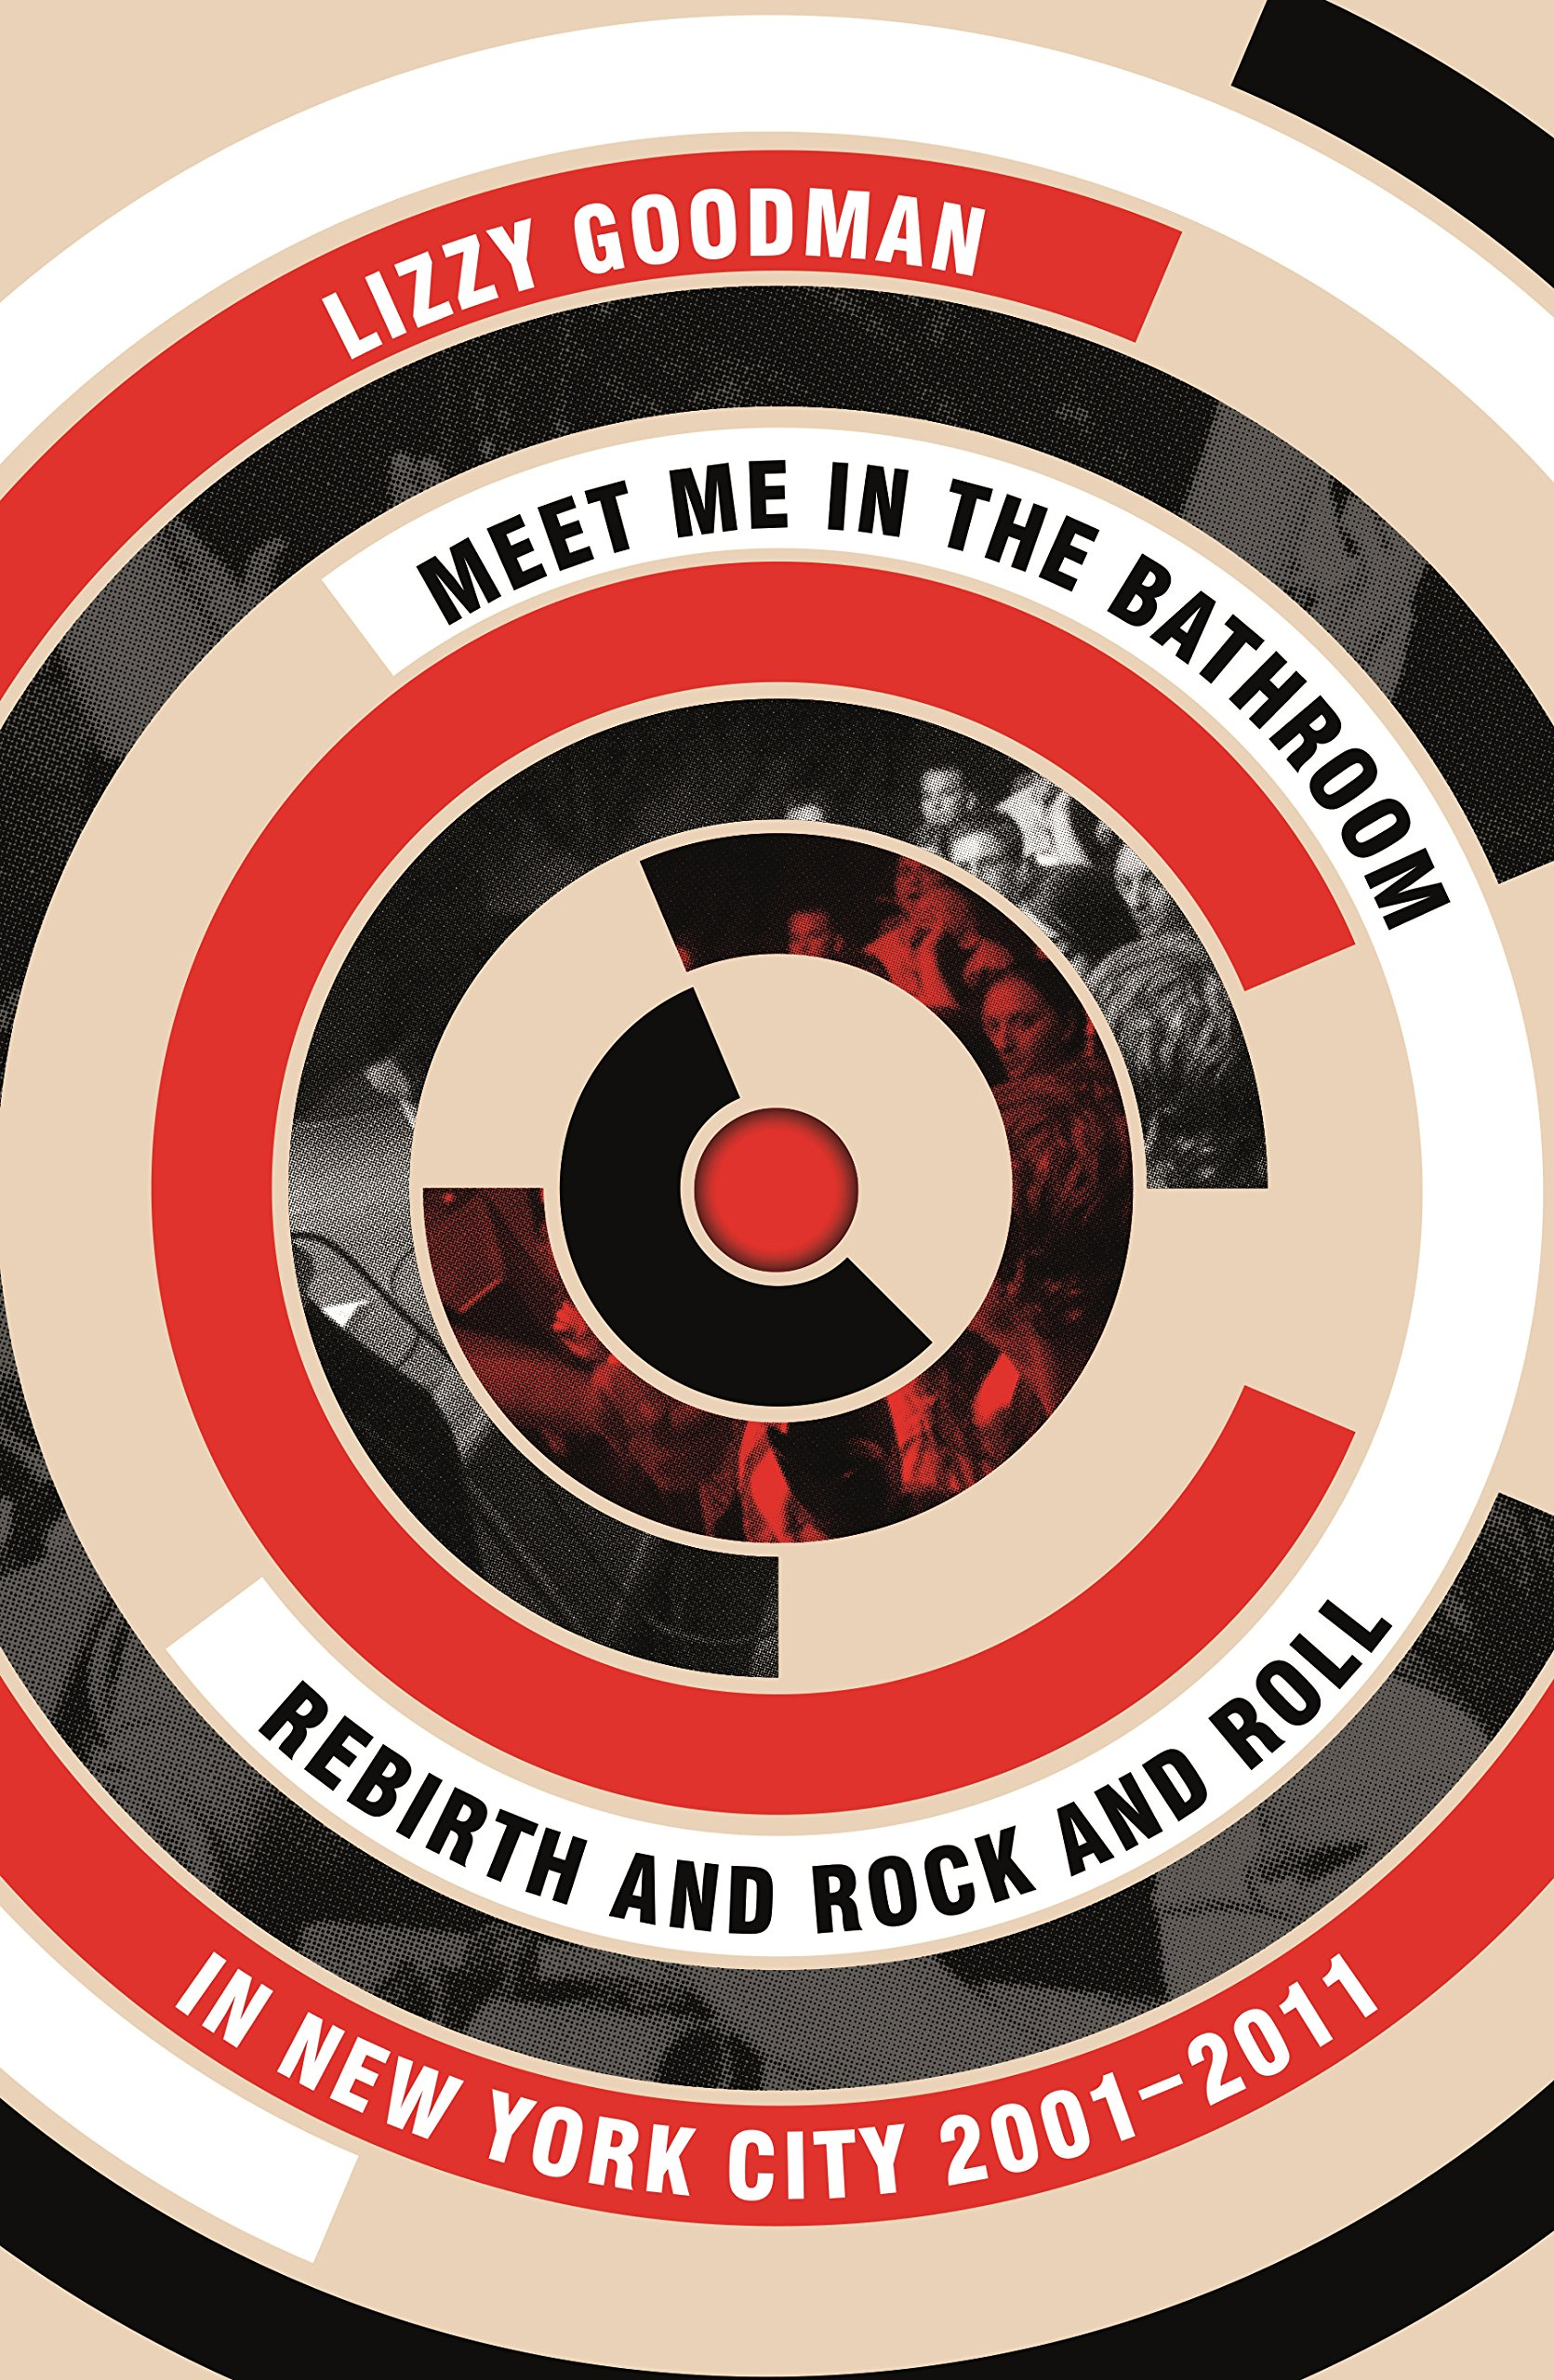 Meet Me in the Bathroom: Rebirth and Rock and Roll in New York City